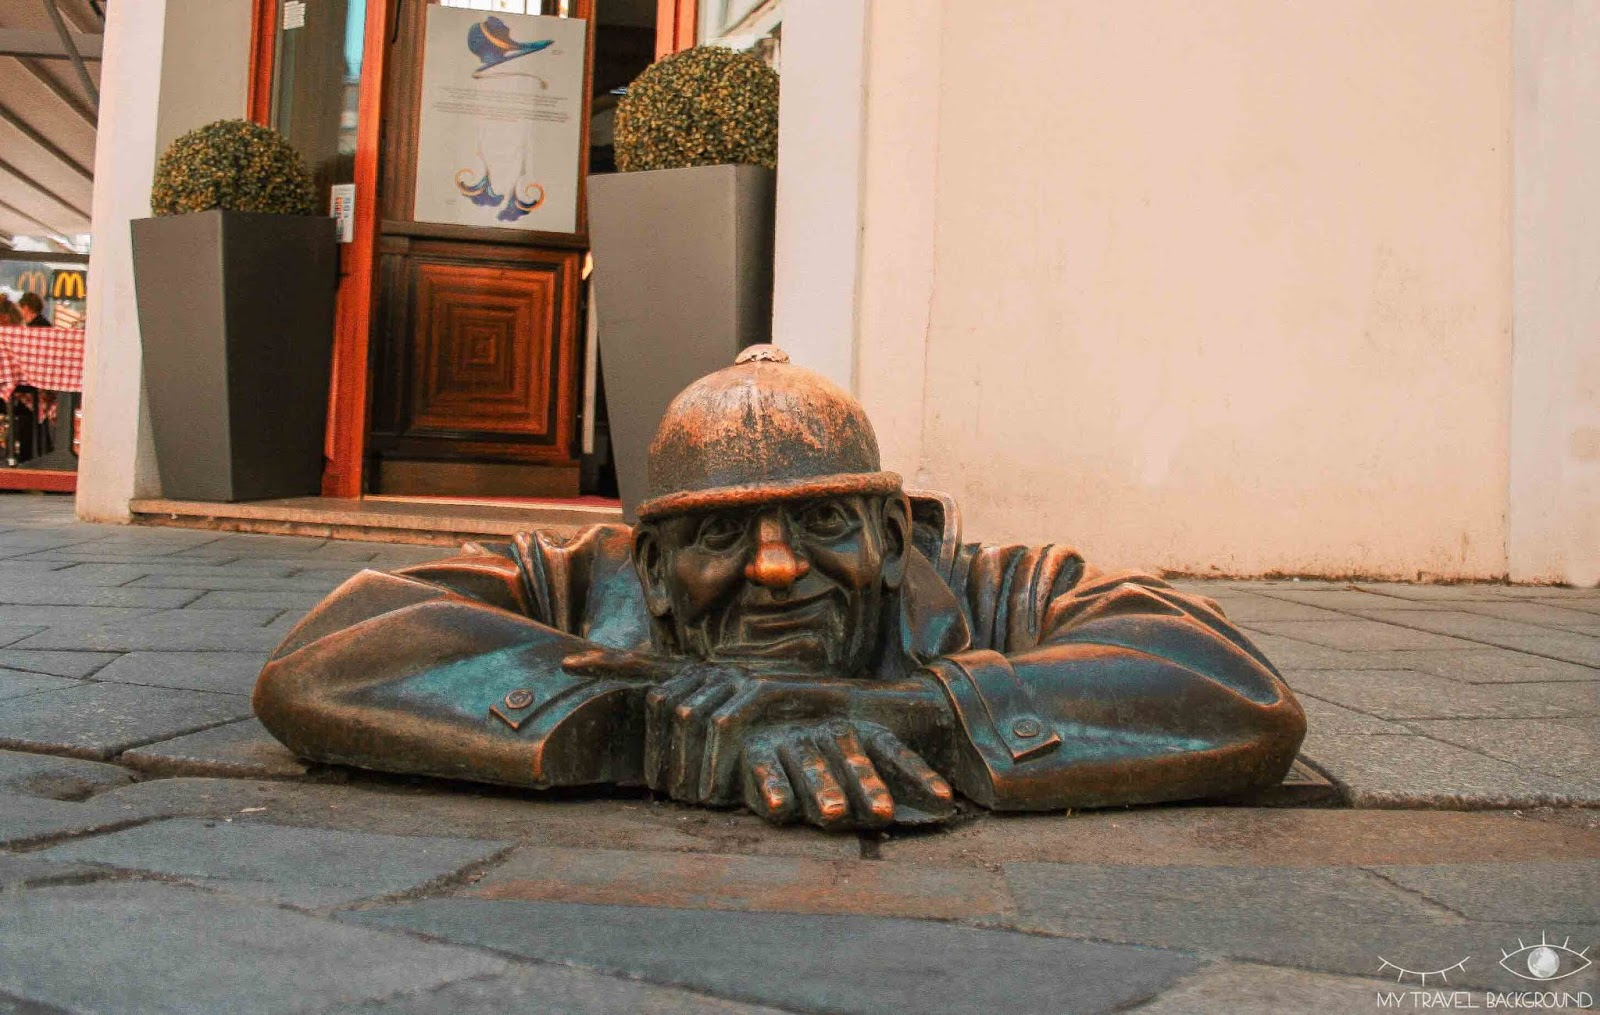 My Travel Background : visiter Bratislava, la capitale de la Slovaquie, en 1 jour - Statue Man at Work